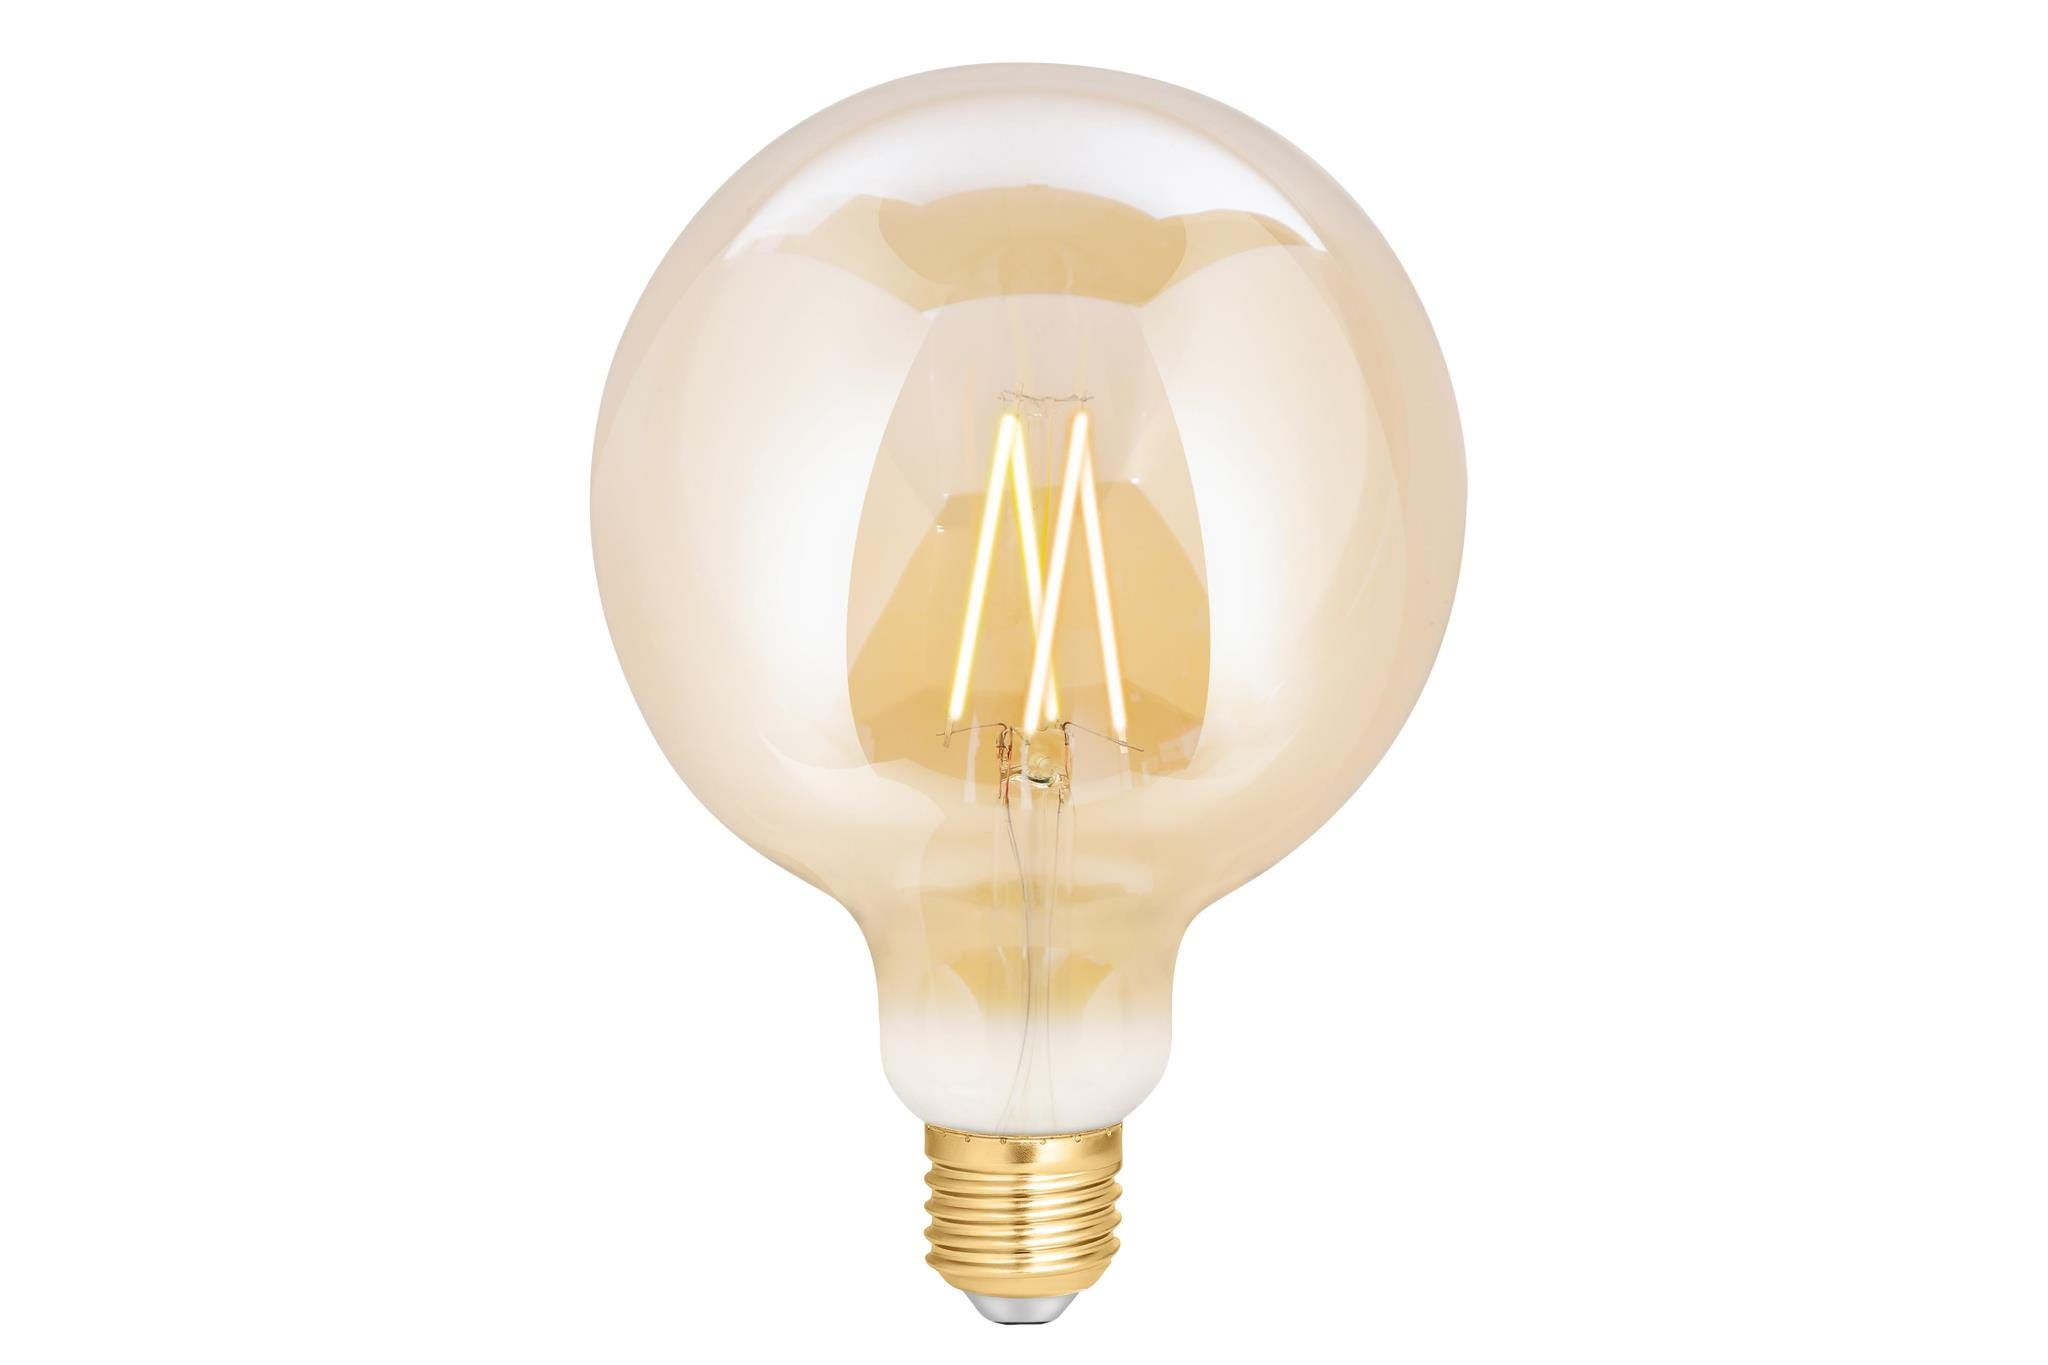 4lite WiZ Connected G125 Edison Filament LED Smart Bulb Amber White Dimmable WiFi  - E27 Screw